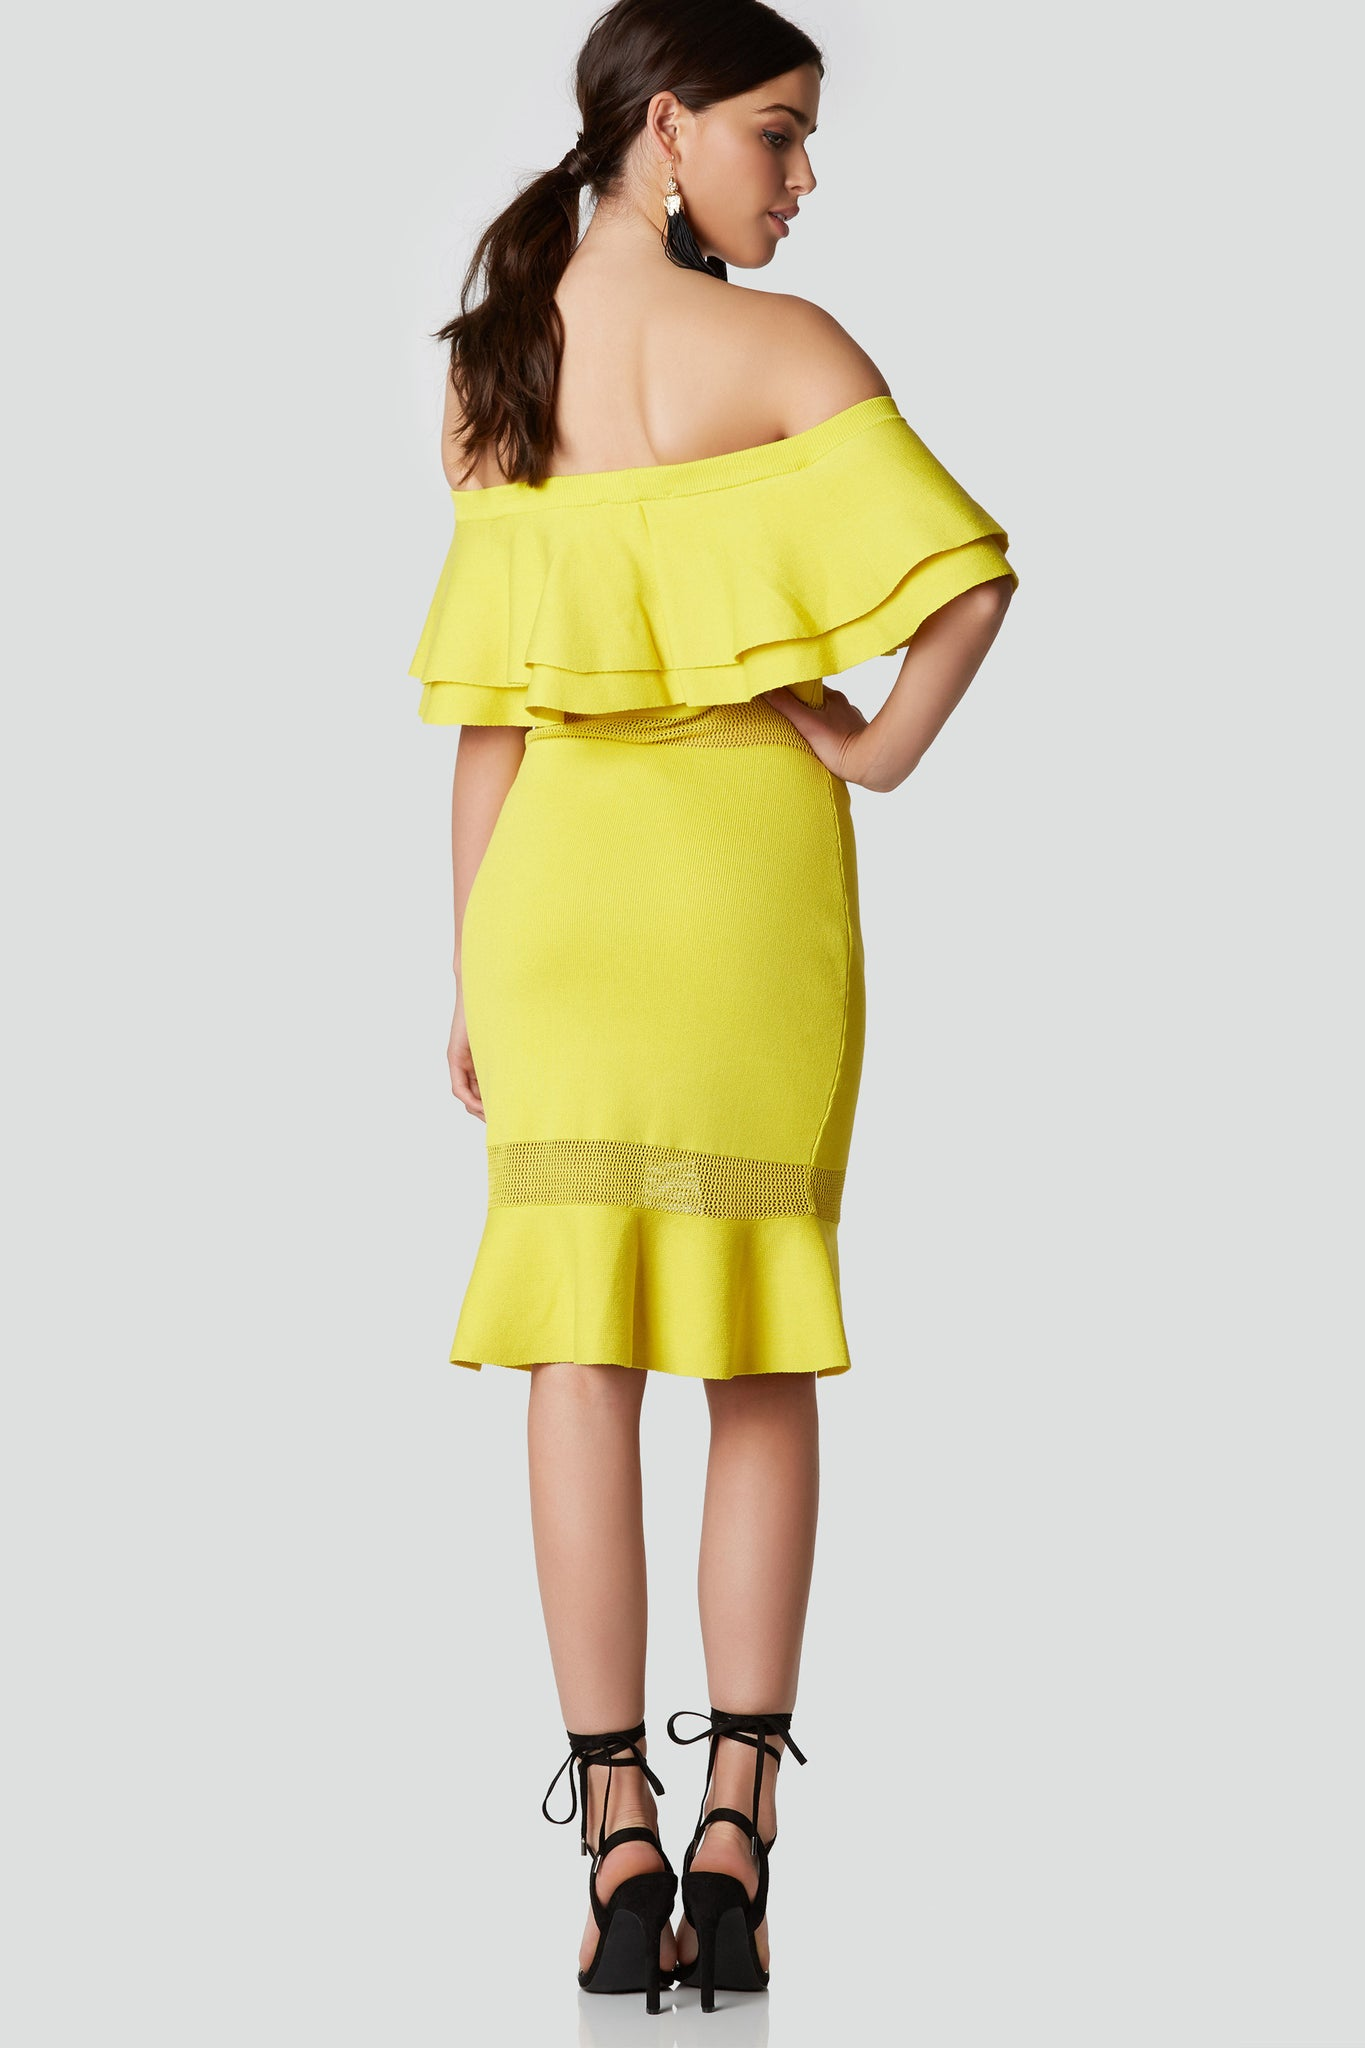 Chic off shoulder midi dress with tiered ruffle design and peek-a-boo knit panel detailing. Bodycon fit with flared hem finish.